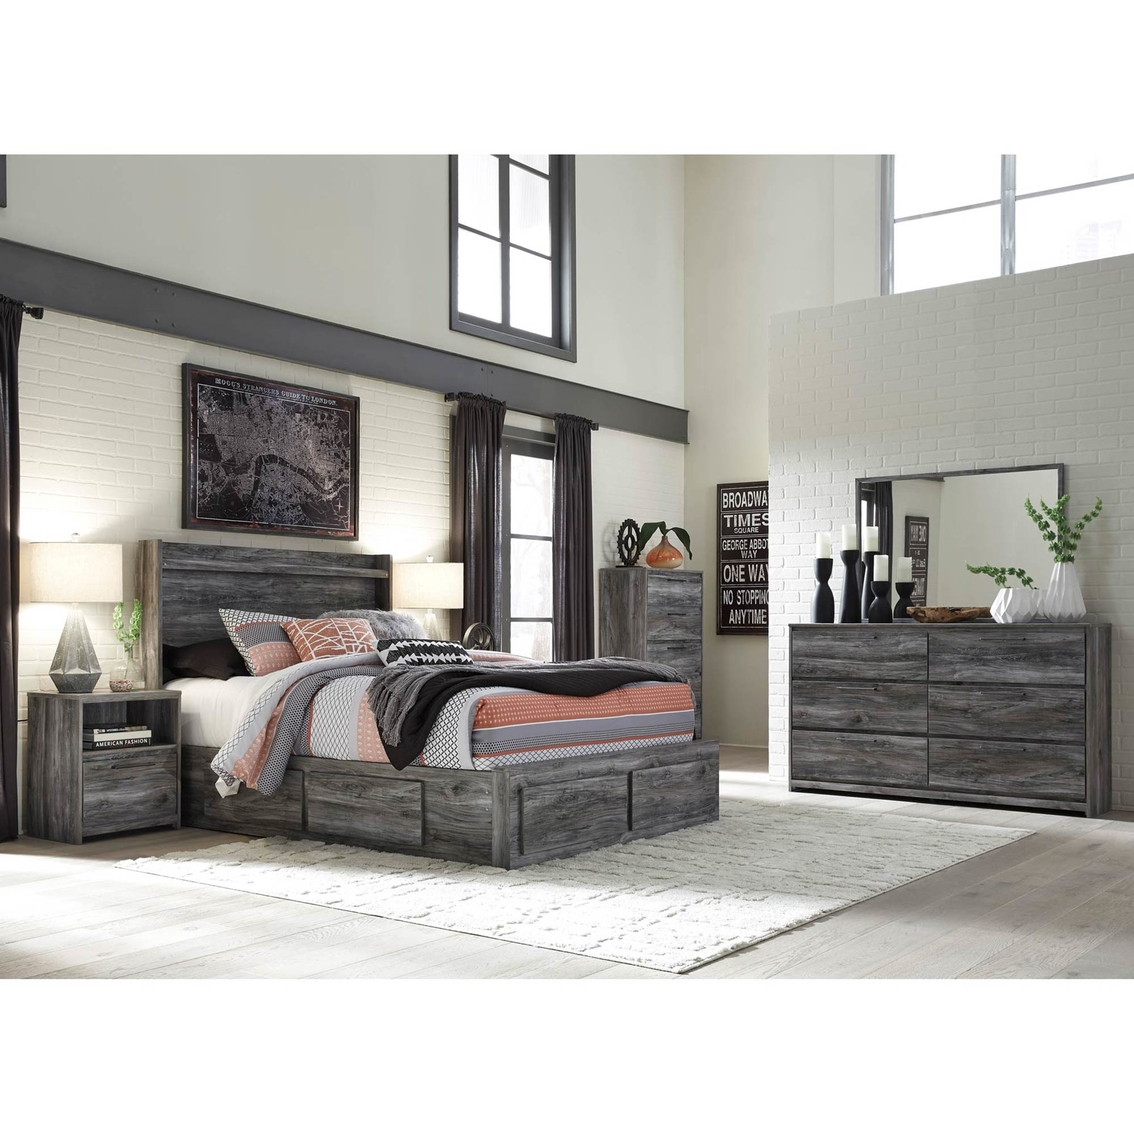 Signature Design By Ashley Baystorm 6 Drawer Storage Bed 5 Pc. Set ...